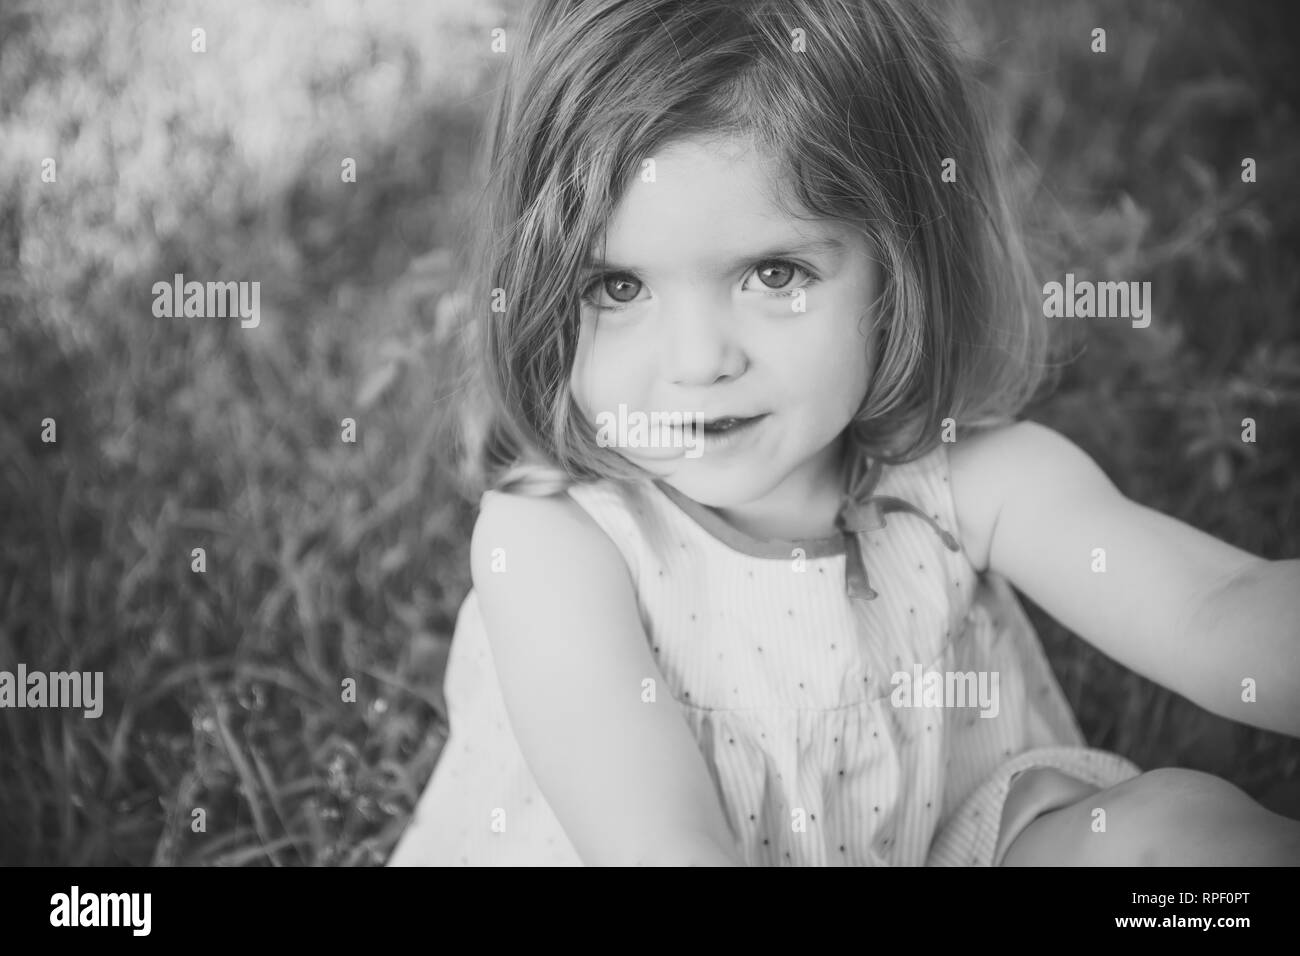 Baby girl with brown eyes on adorable face - Stock Image